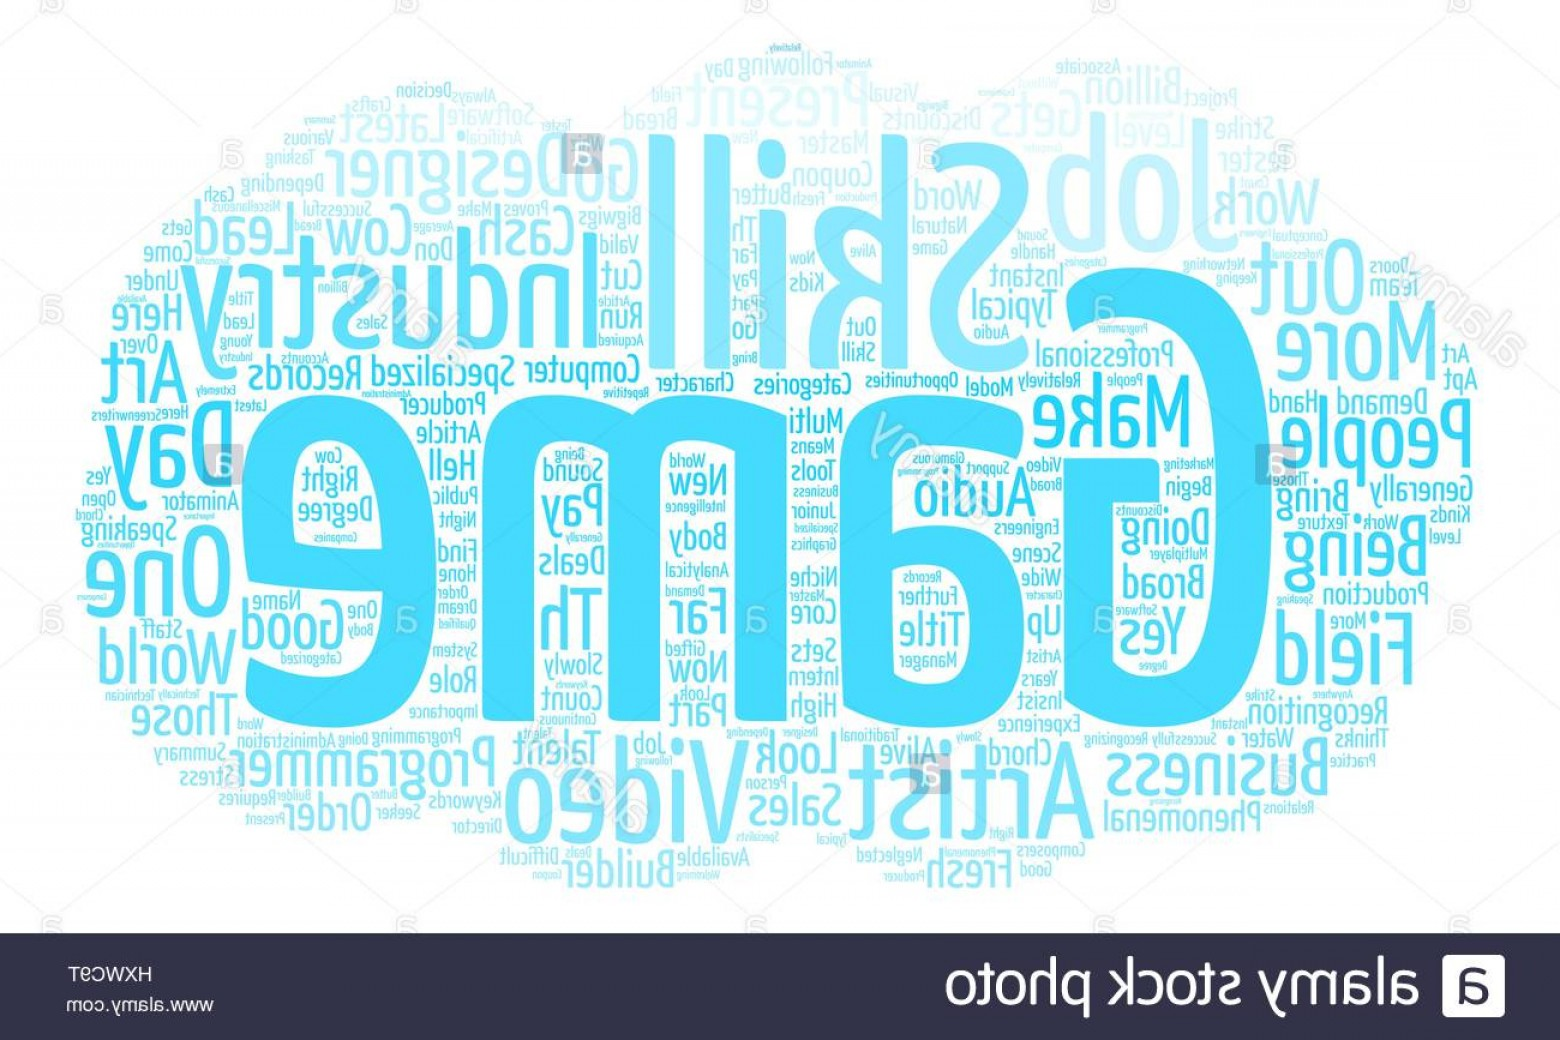 Vector Job Opportunities: Stock Photo Job Opportunities Text Background Word Cloud Concept